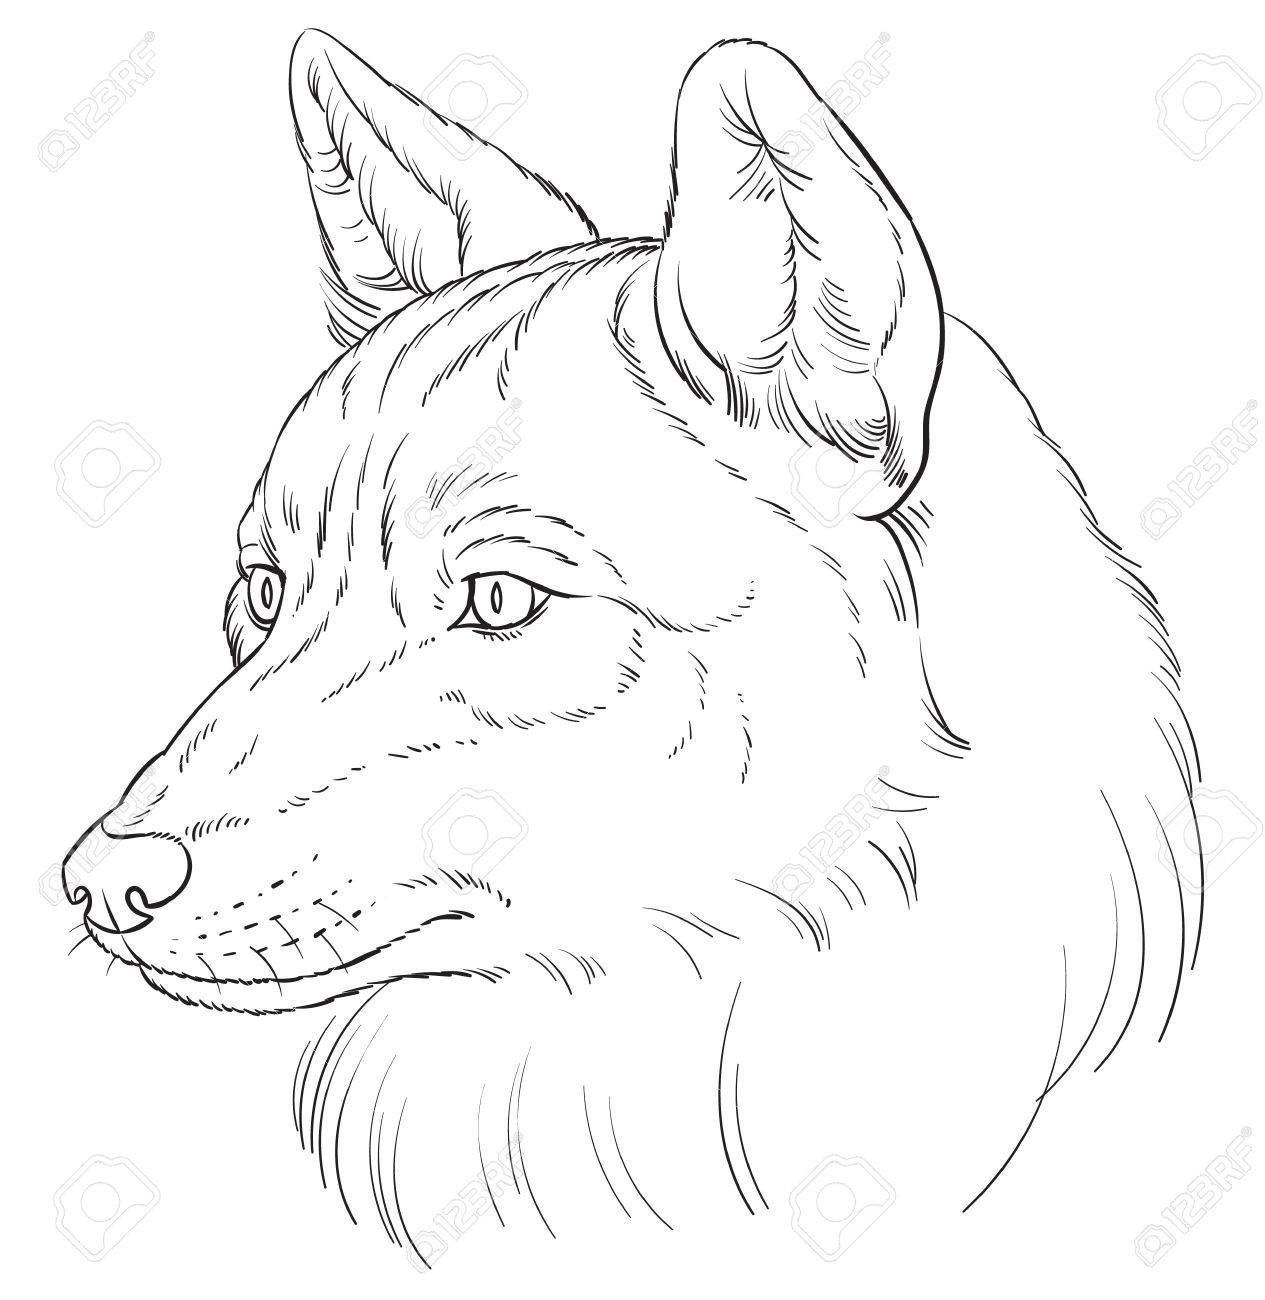 Illustration Tete Du Loup Dans Le Style Realiste Illustration